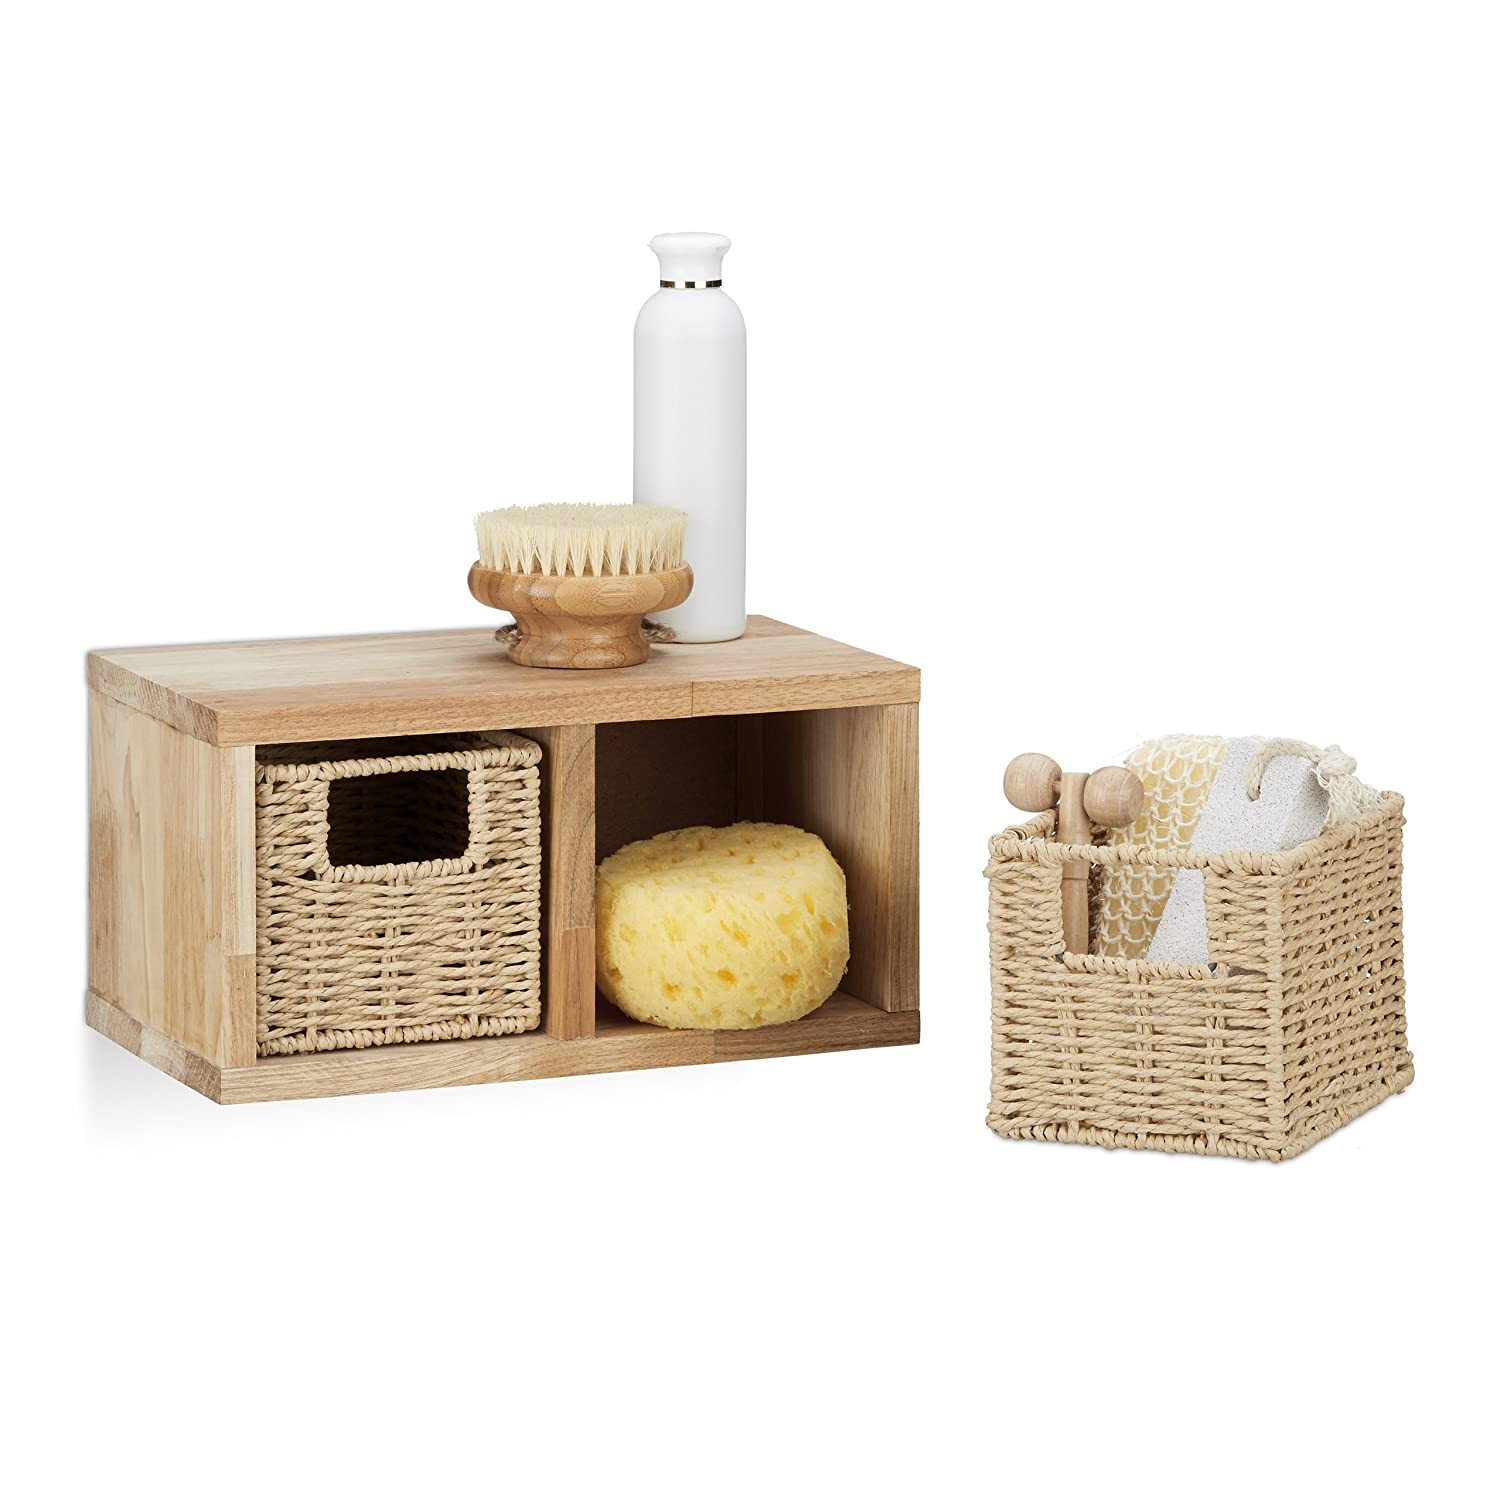 relaxdays etagere 2 cubes rangement panier amovible corbeille bois noyer ebay. Black Bedroom Furniture Sets. Home Design Ideas